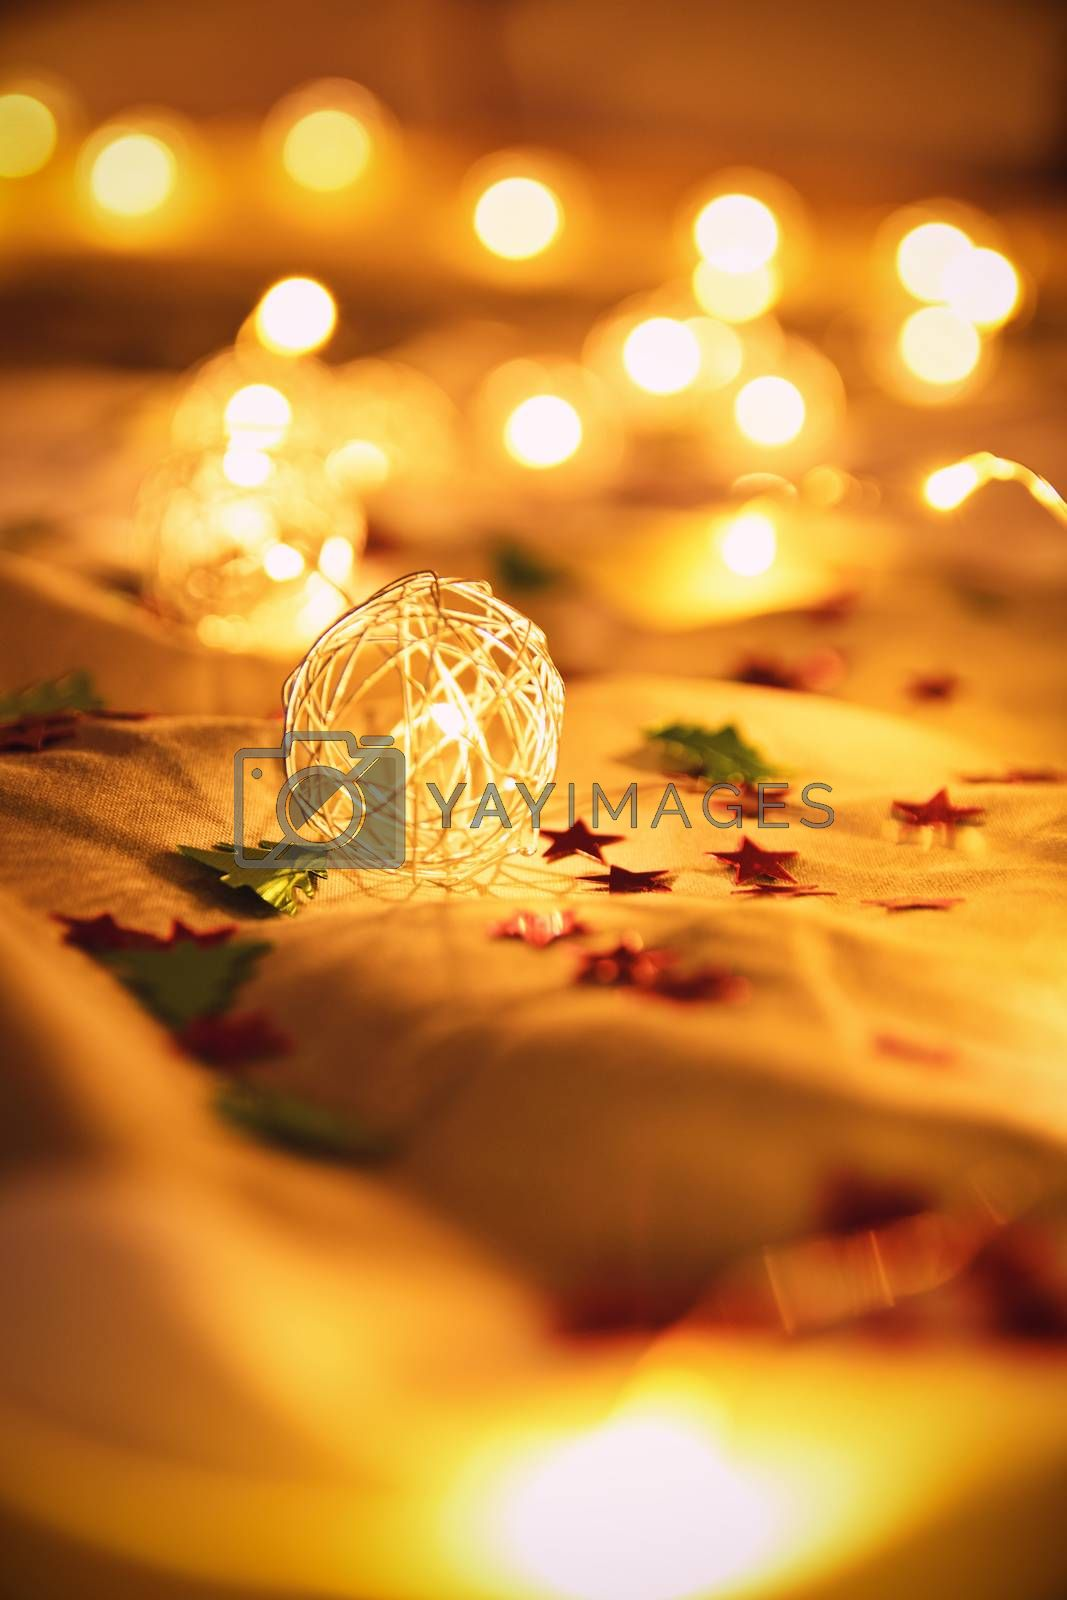 Close up shot of blurred golden Christmas lights with tiny stars and Christmas tree decorations, on rumpled bed sheets, making cozy and festive atmosphere. Festive bukeh background with lights.